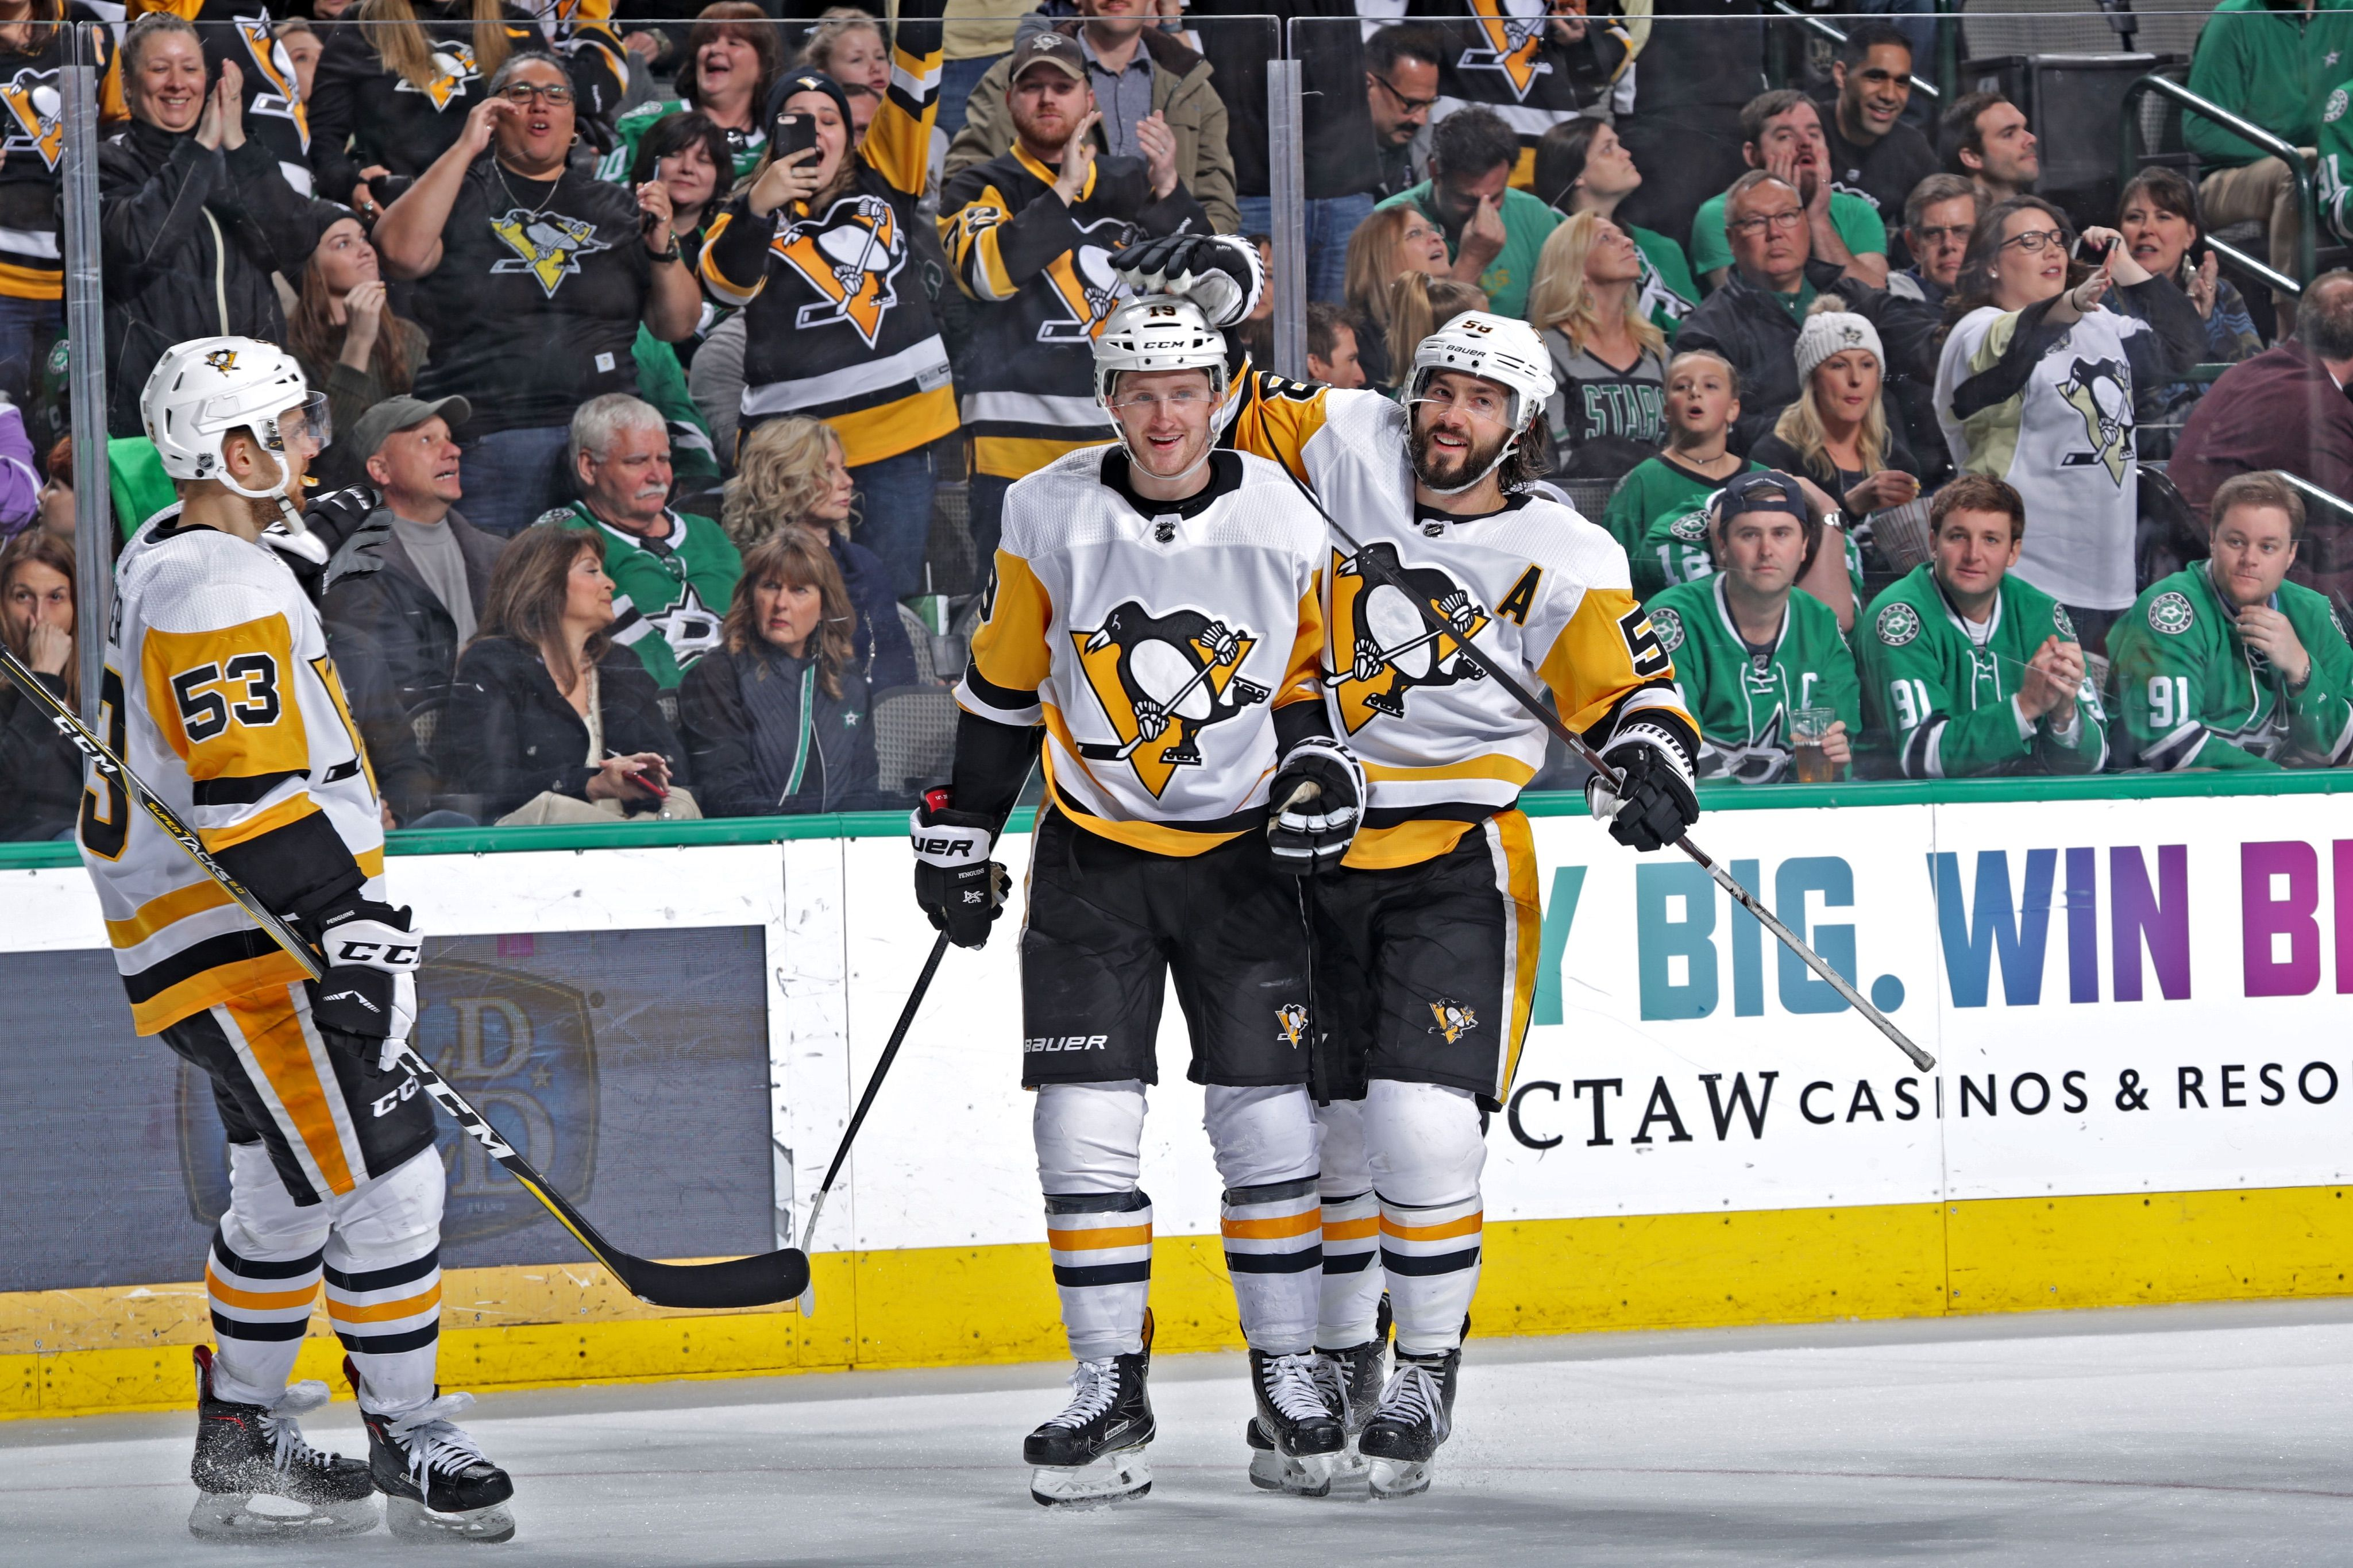 March 23 2019 At Dallas Jared Mccann Scored Twice Including An Amazing Spin O Rama Goal To Help The Pittsburgh Penguins Pittsburgh American Airlines Center